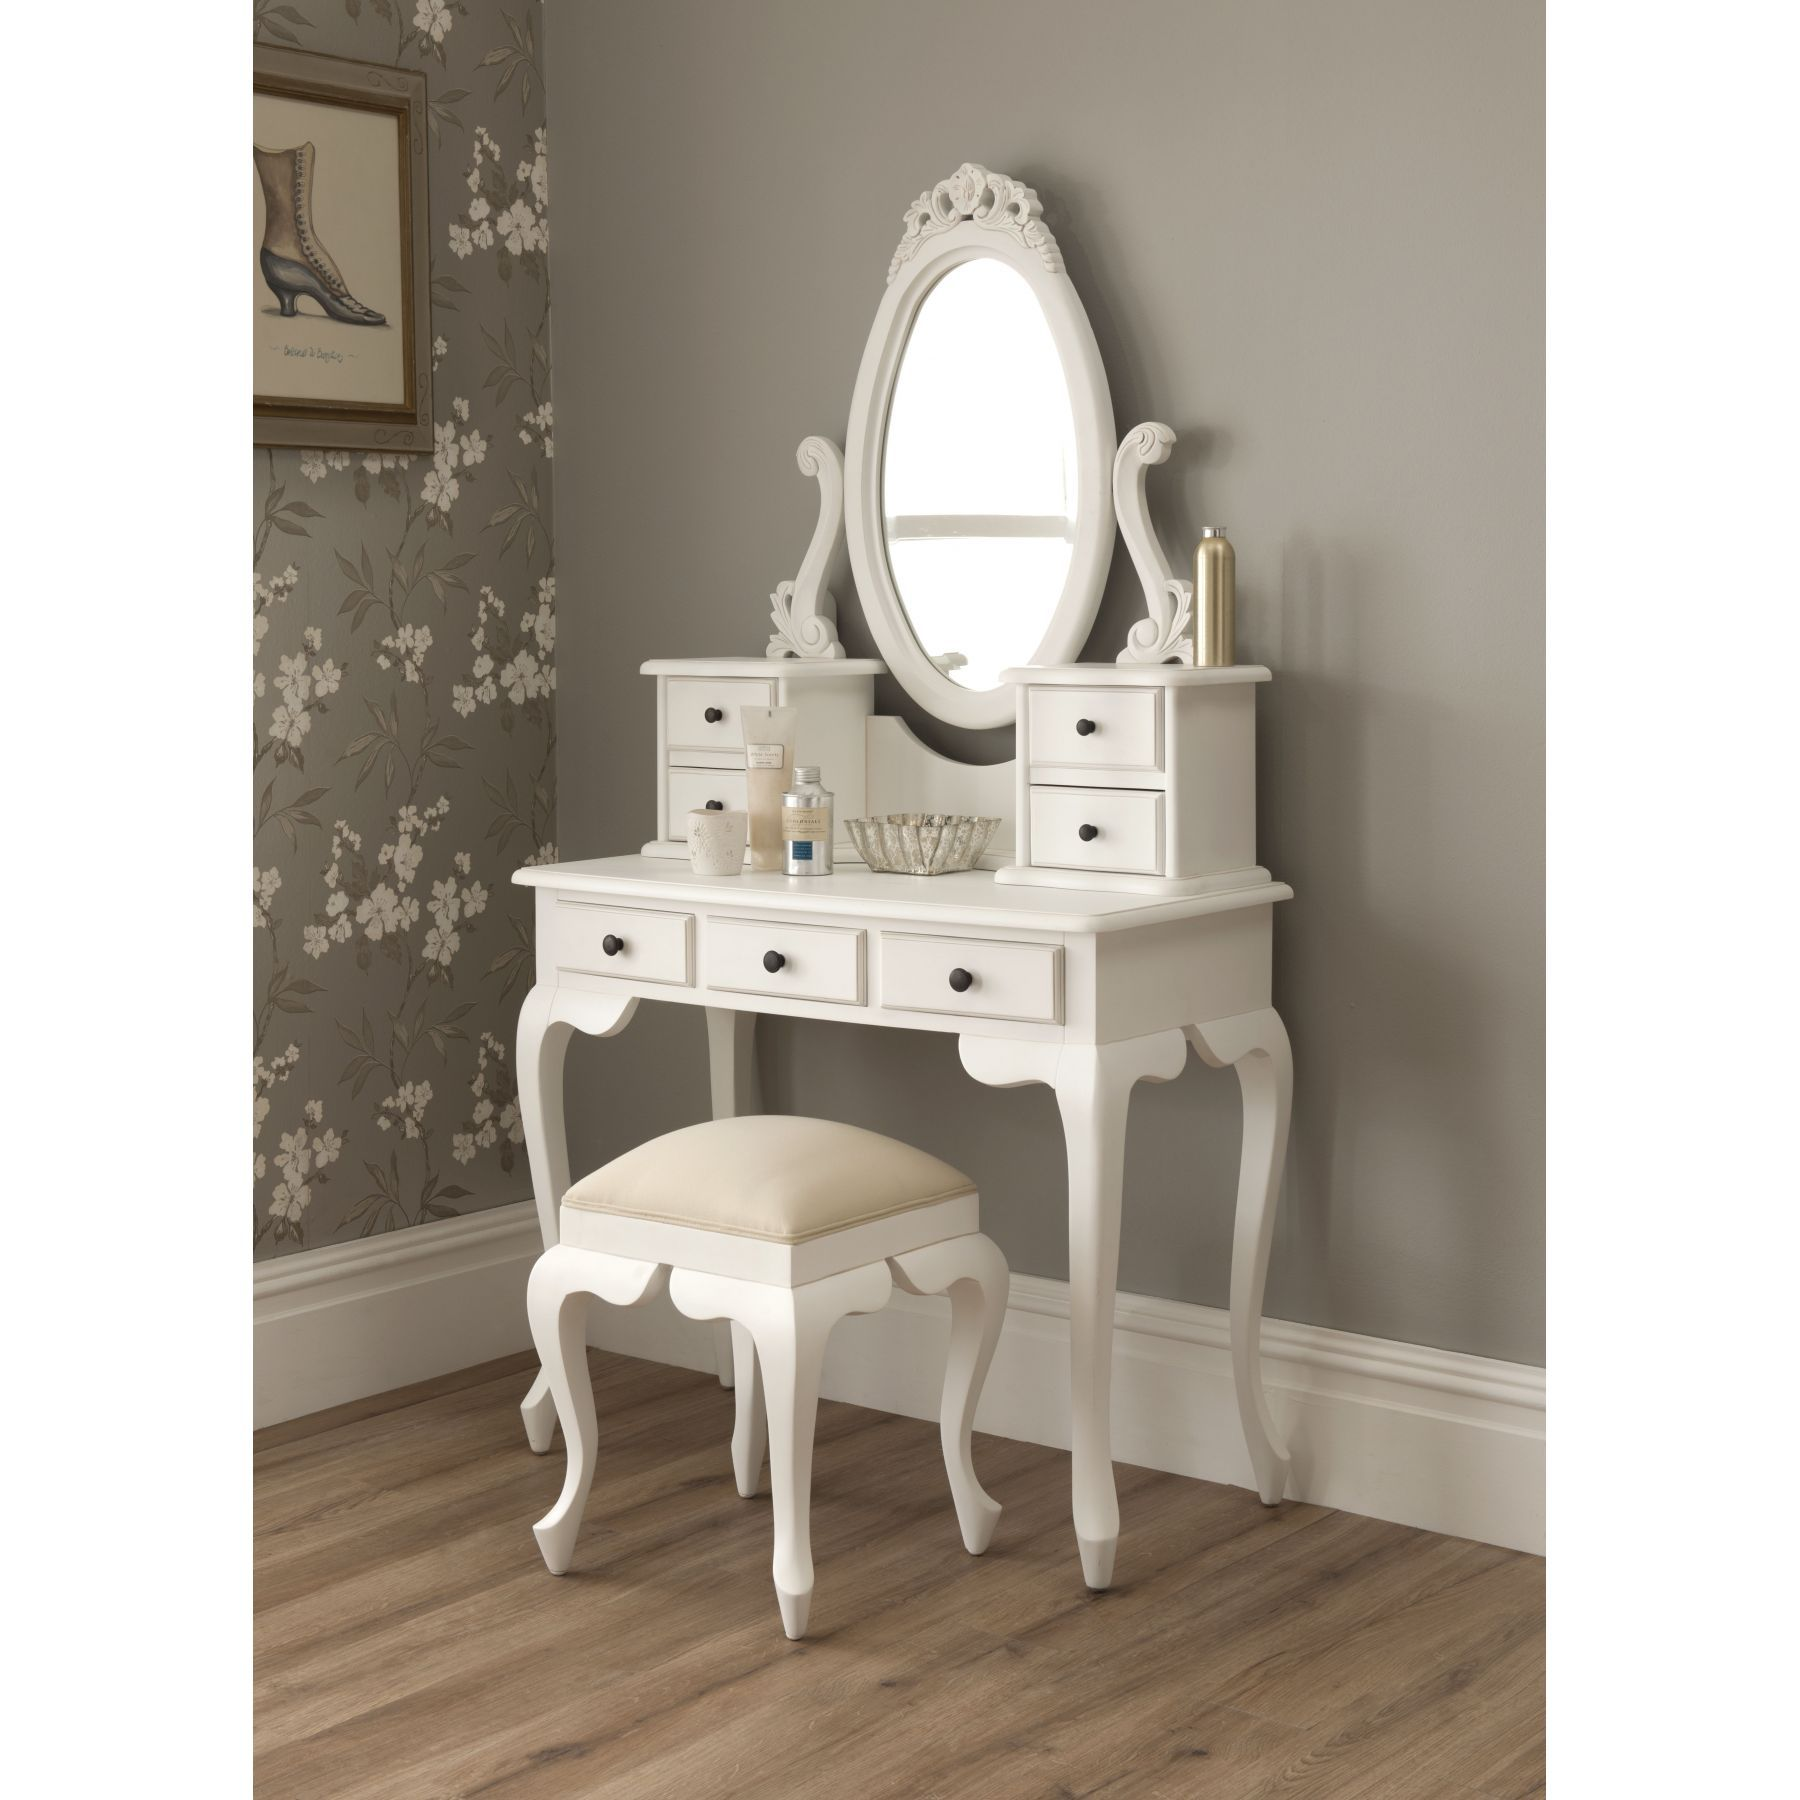 Rustic White Wooden Makeup Vanity Bedroom, Enchanting